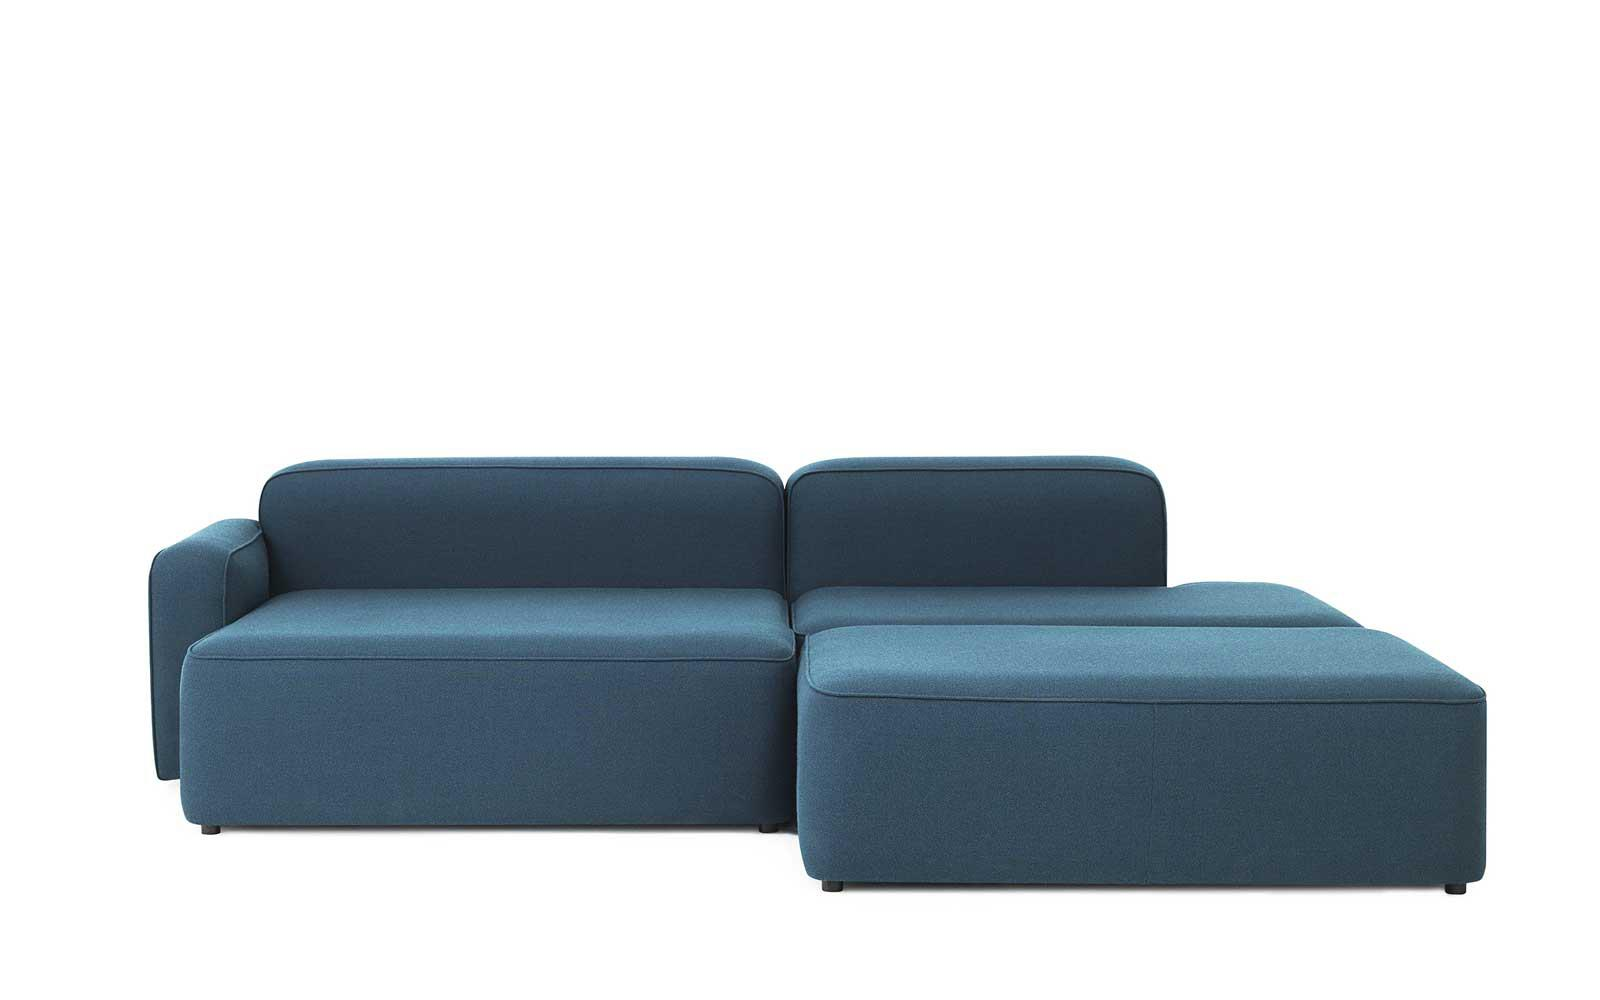 Rope Sofa Chaise Lounge left with Pouf3